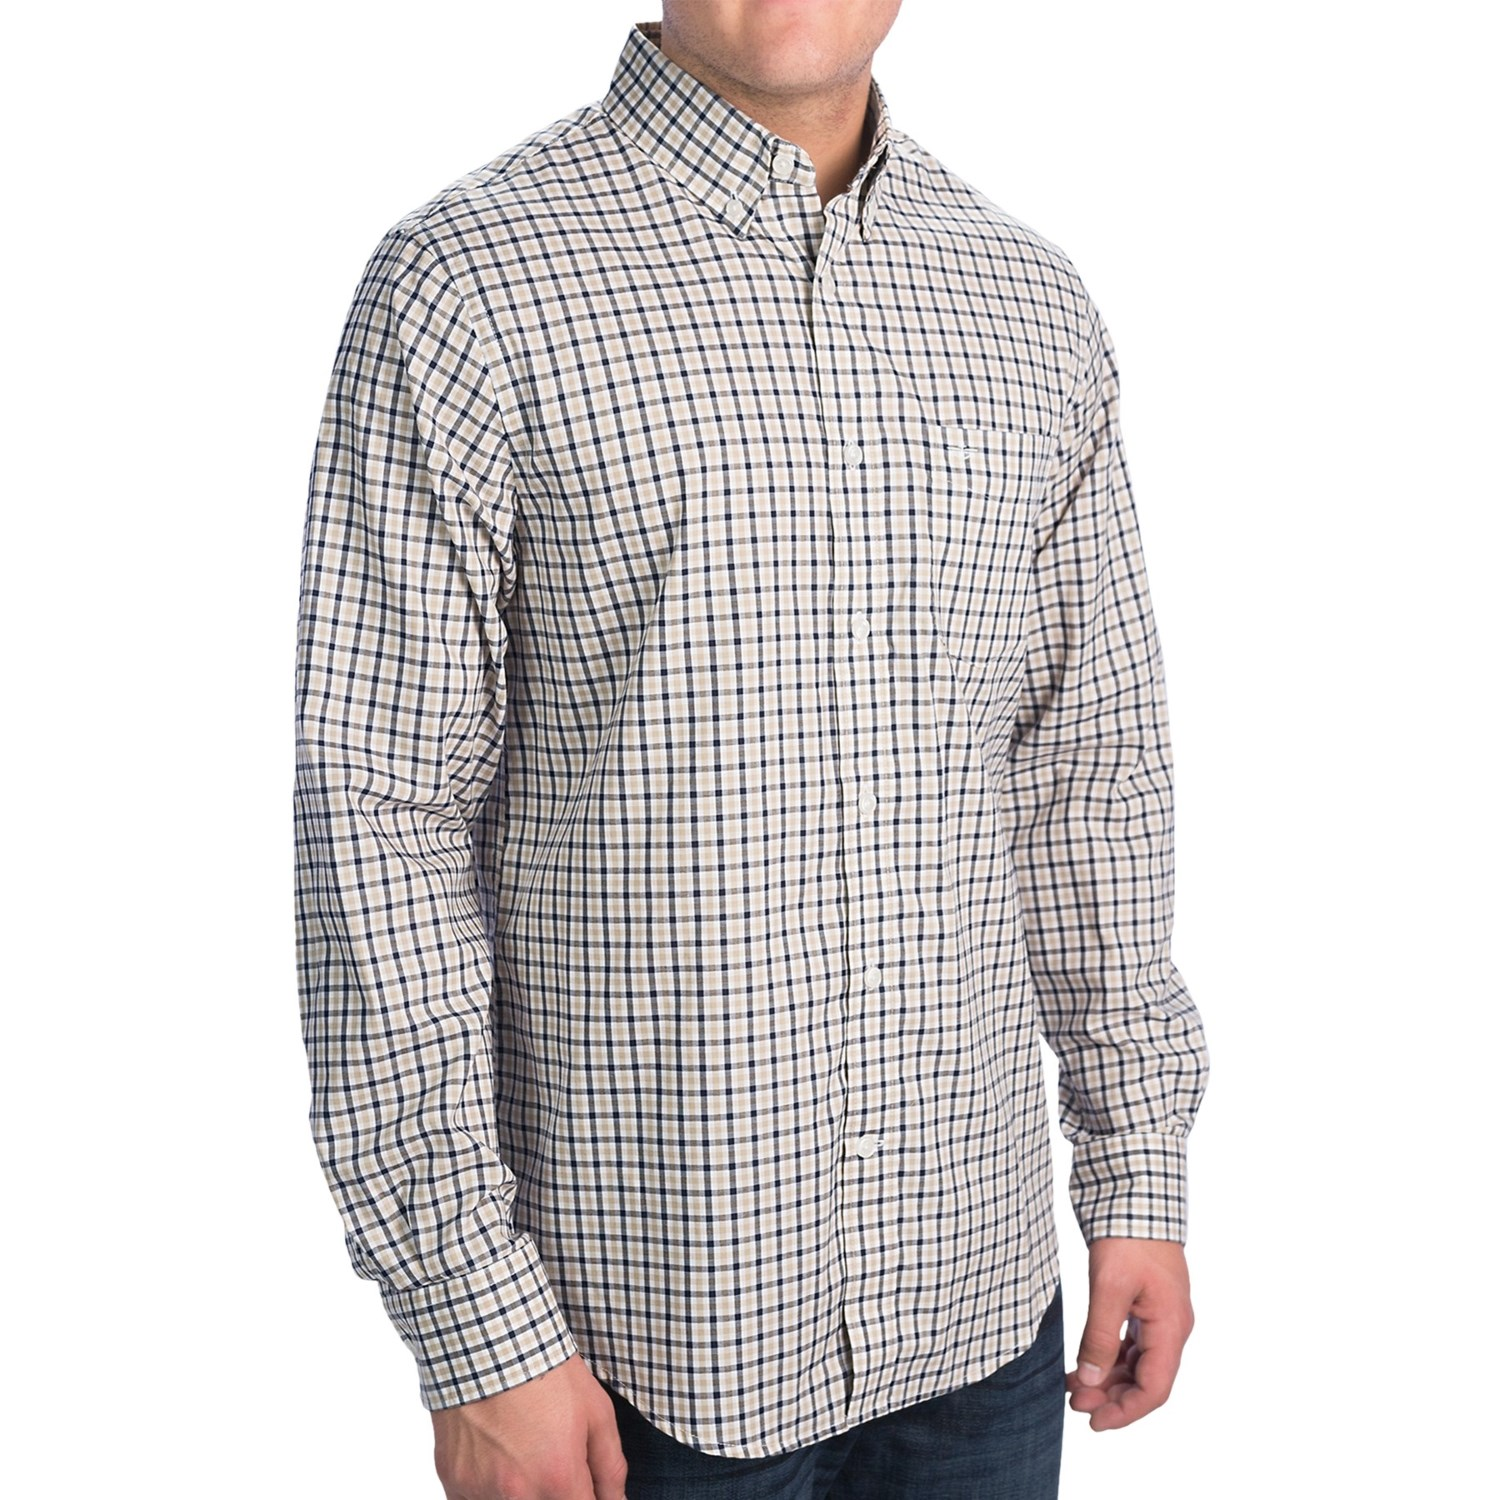 Dockers no wrinkle check shirt for men 8282p save 56 for Dockers wrinkle free shirts